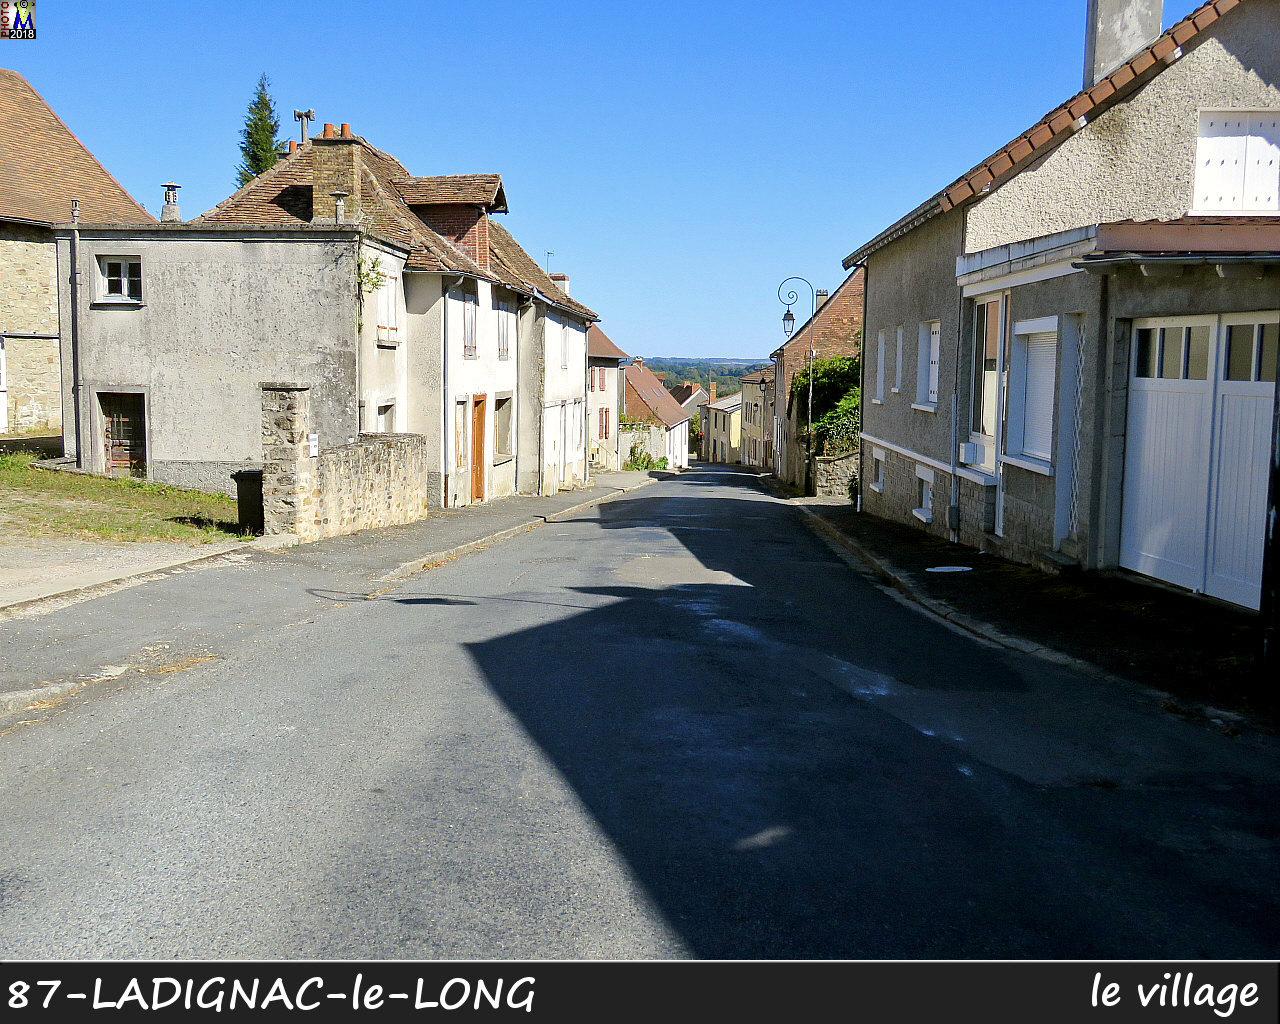 87LADIGNAC-LONG_village_100.jpg